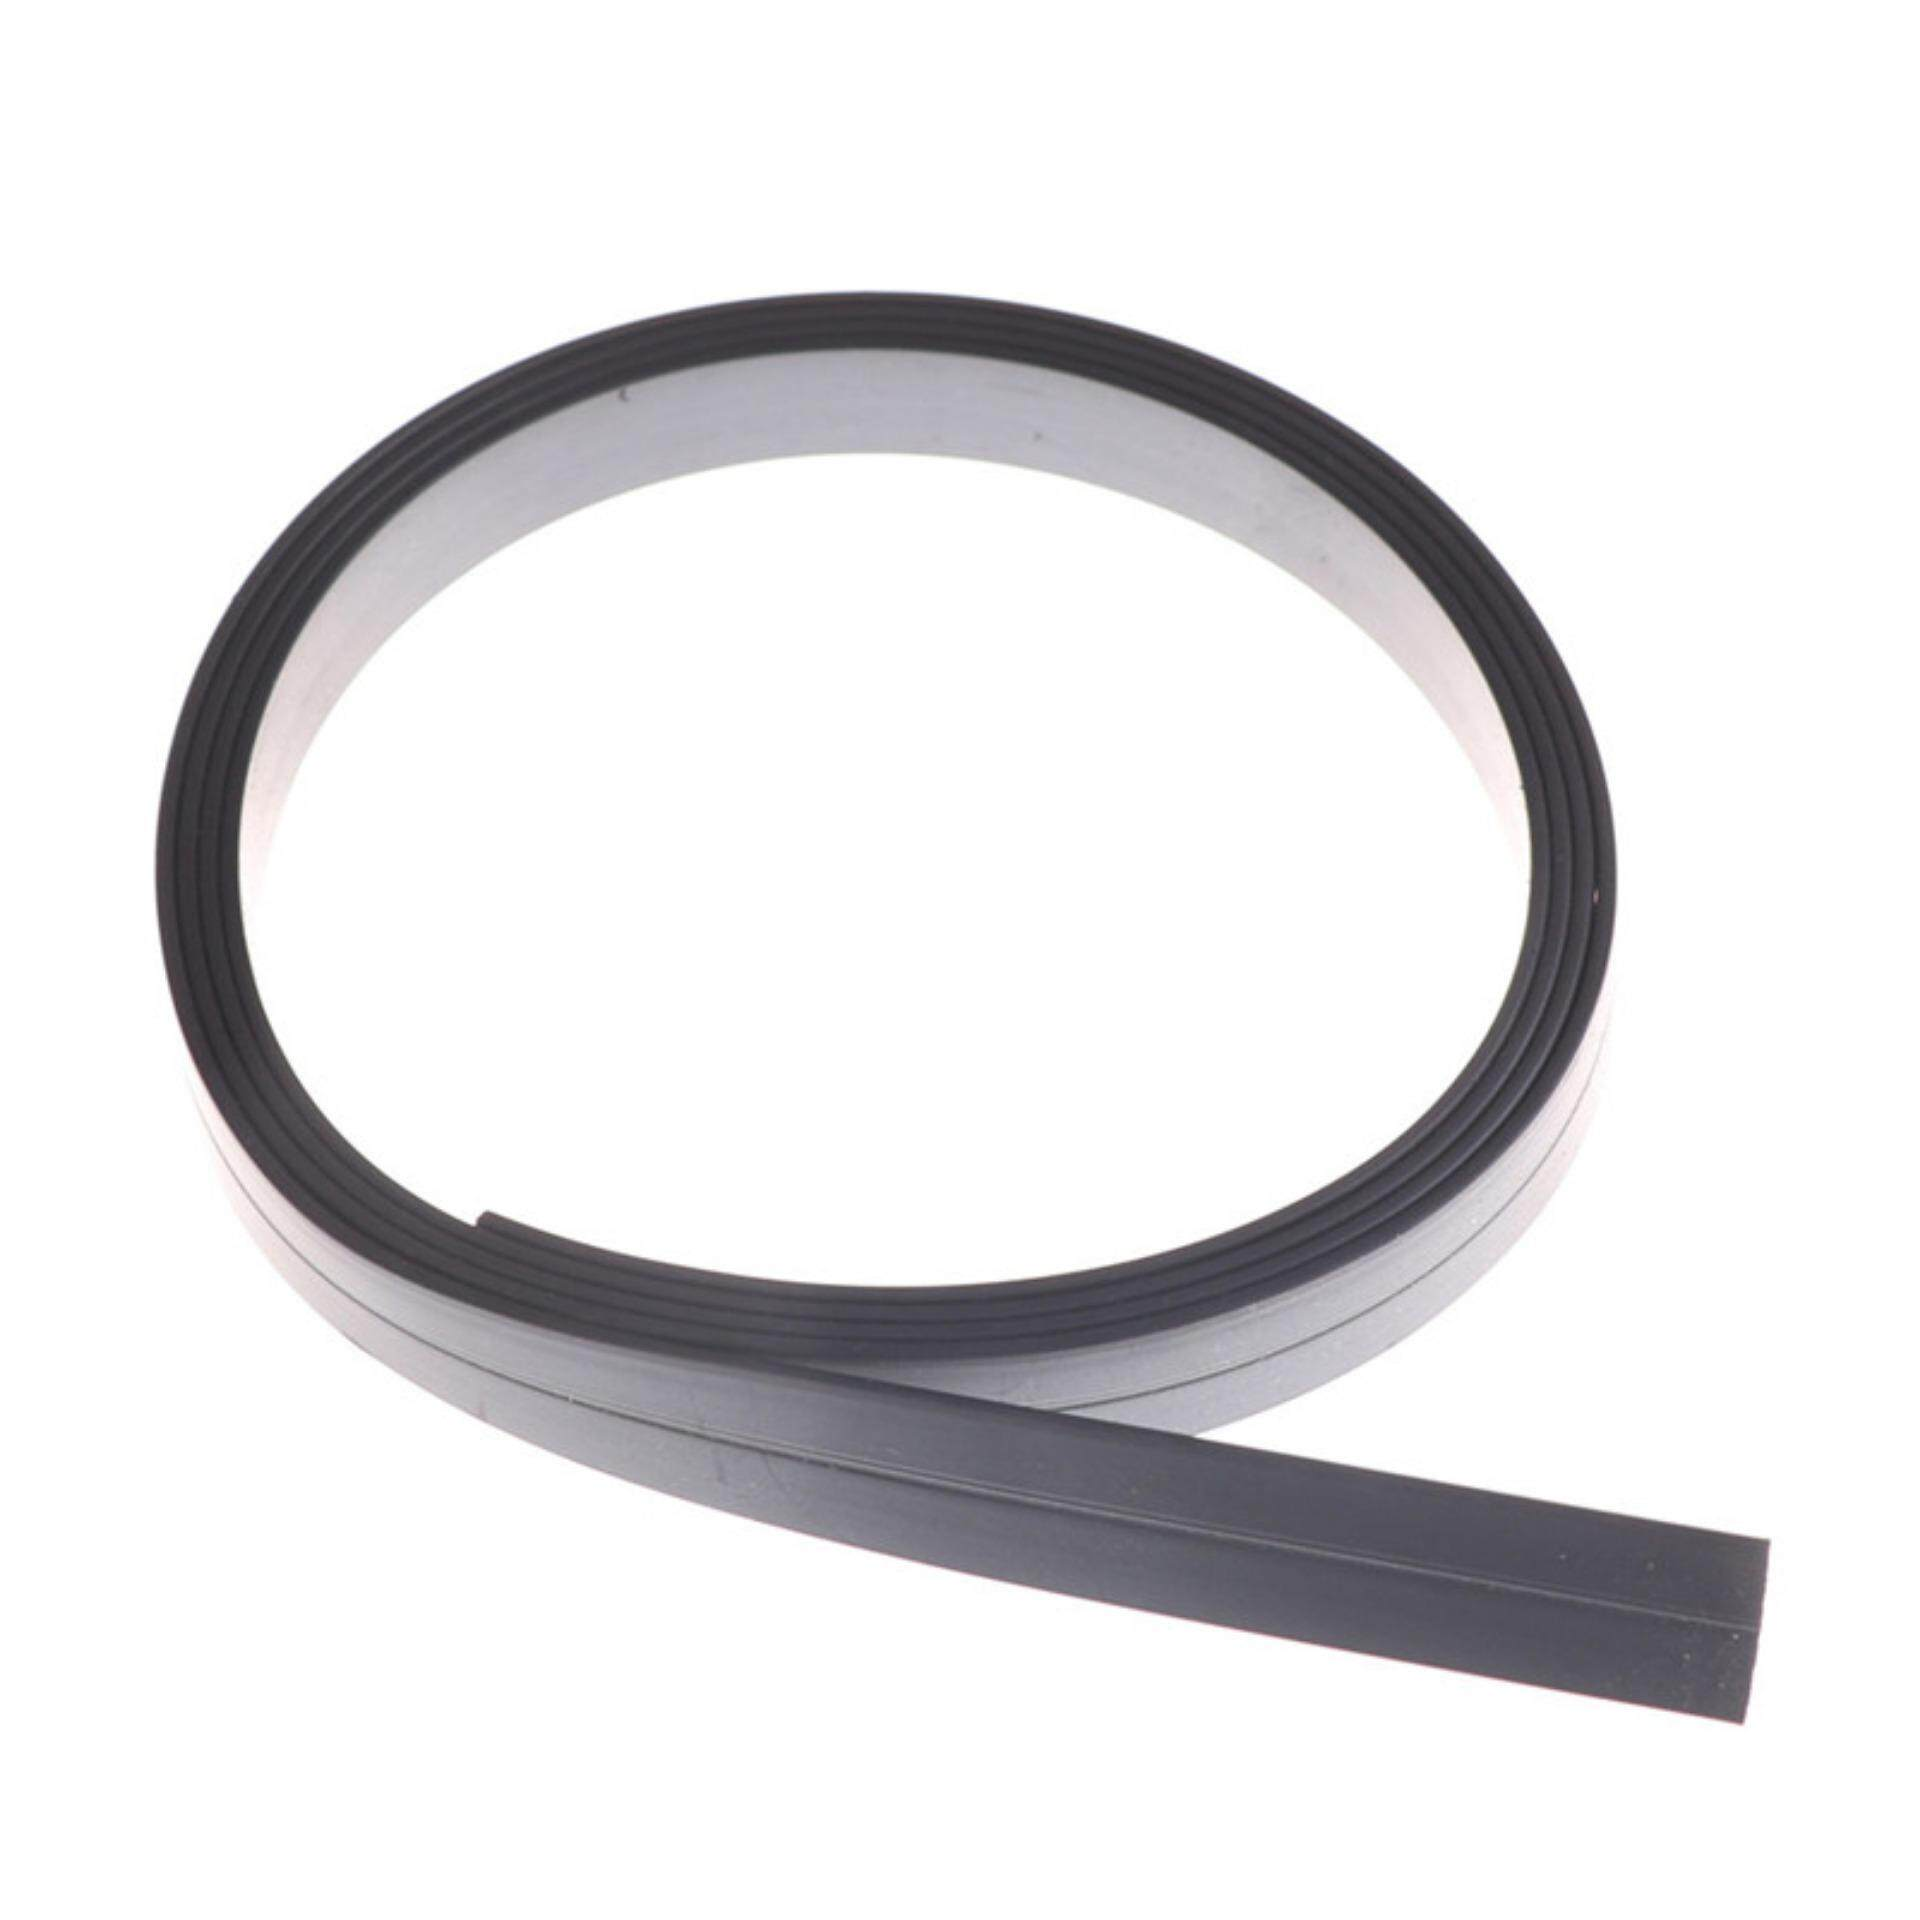 1m Rubber Magnetic Stripe Flexible Magnet Diy Craft Tape 10*1.2mm By Crystal Wave.